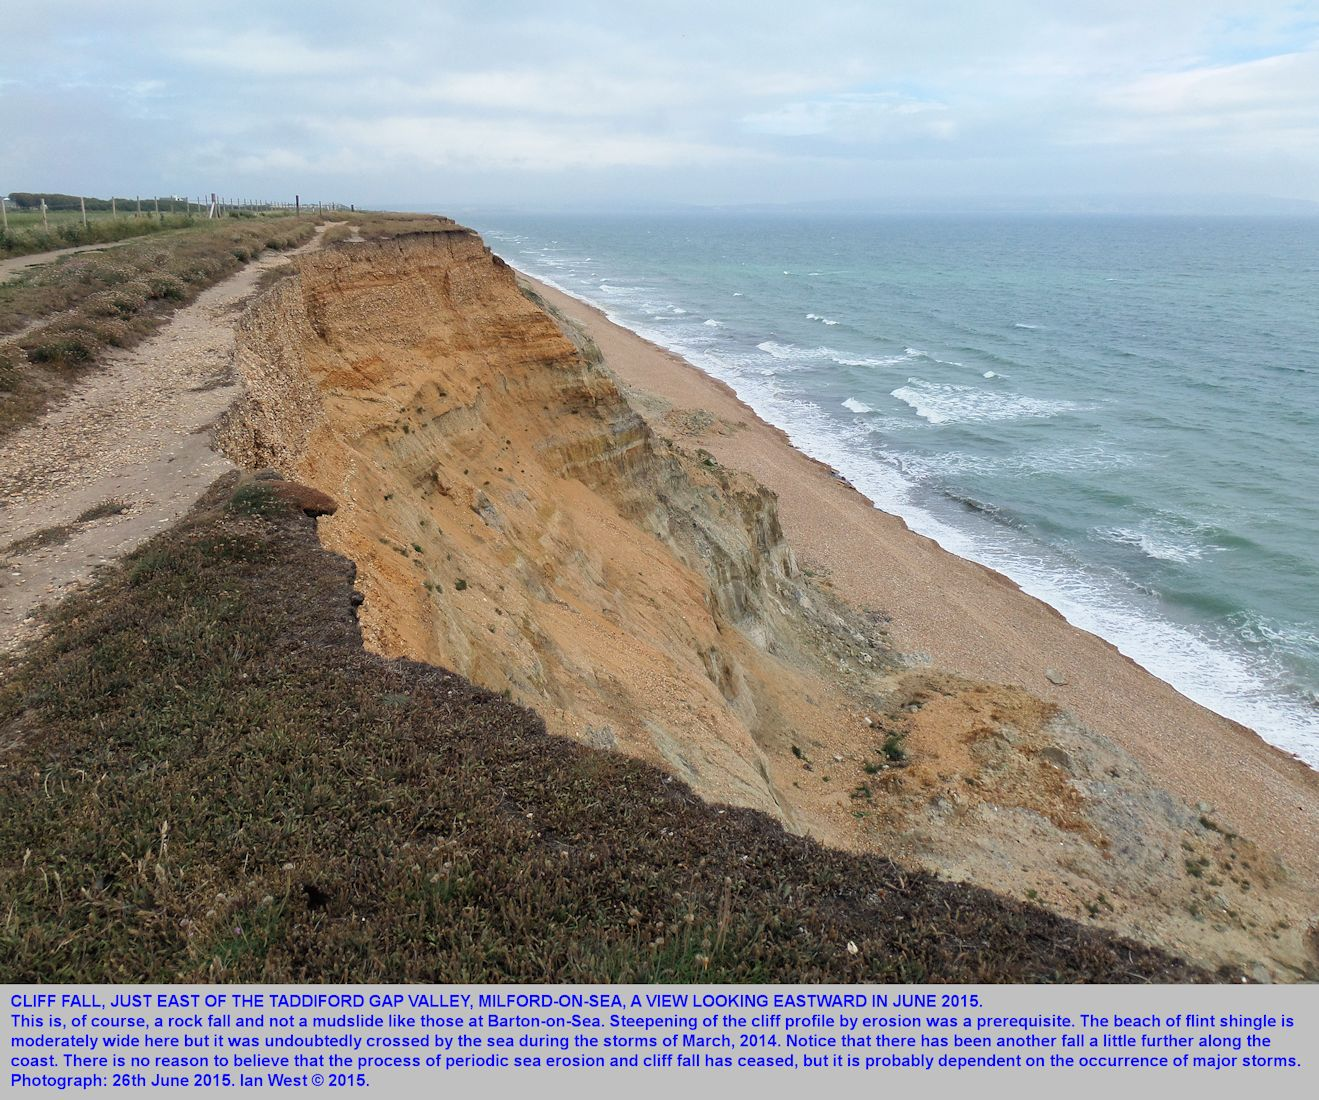 A view eastward of the site of recent erosion of the cliff east of Taddiford Gap, seen from the cliff top, Hordle Cliff, Hampshire, 26th June 2015